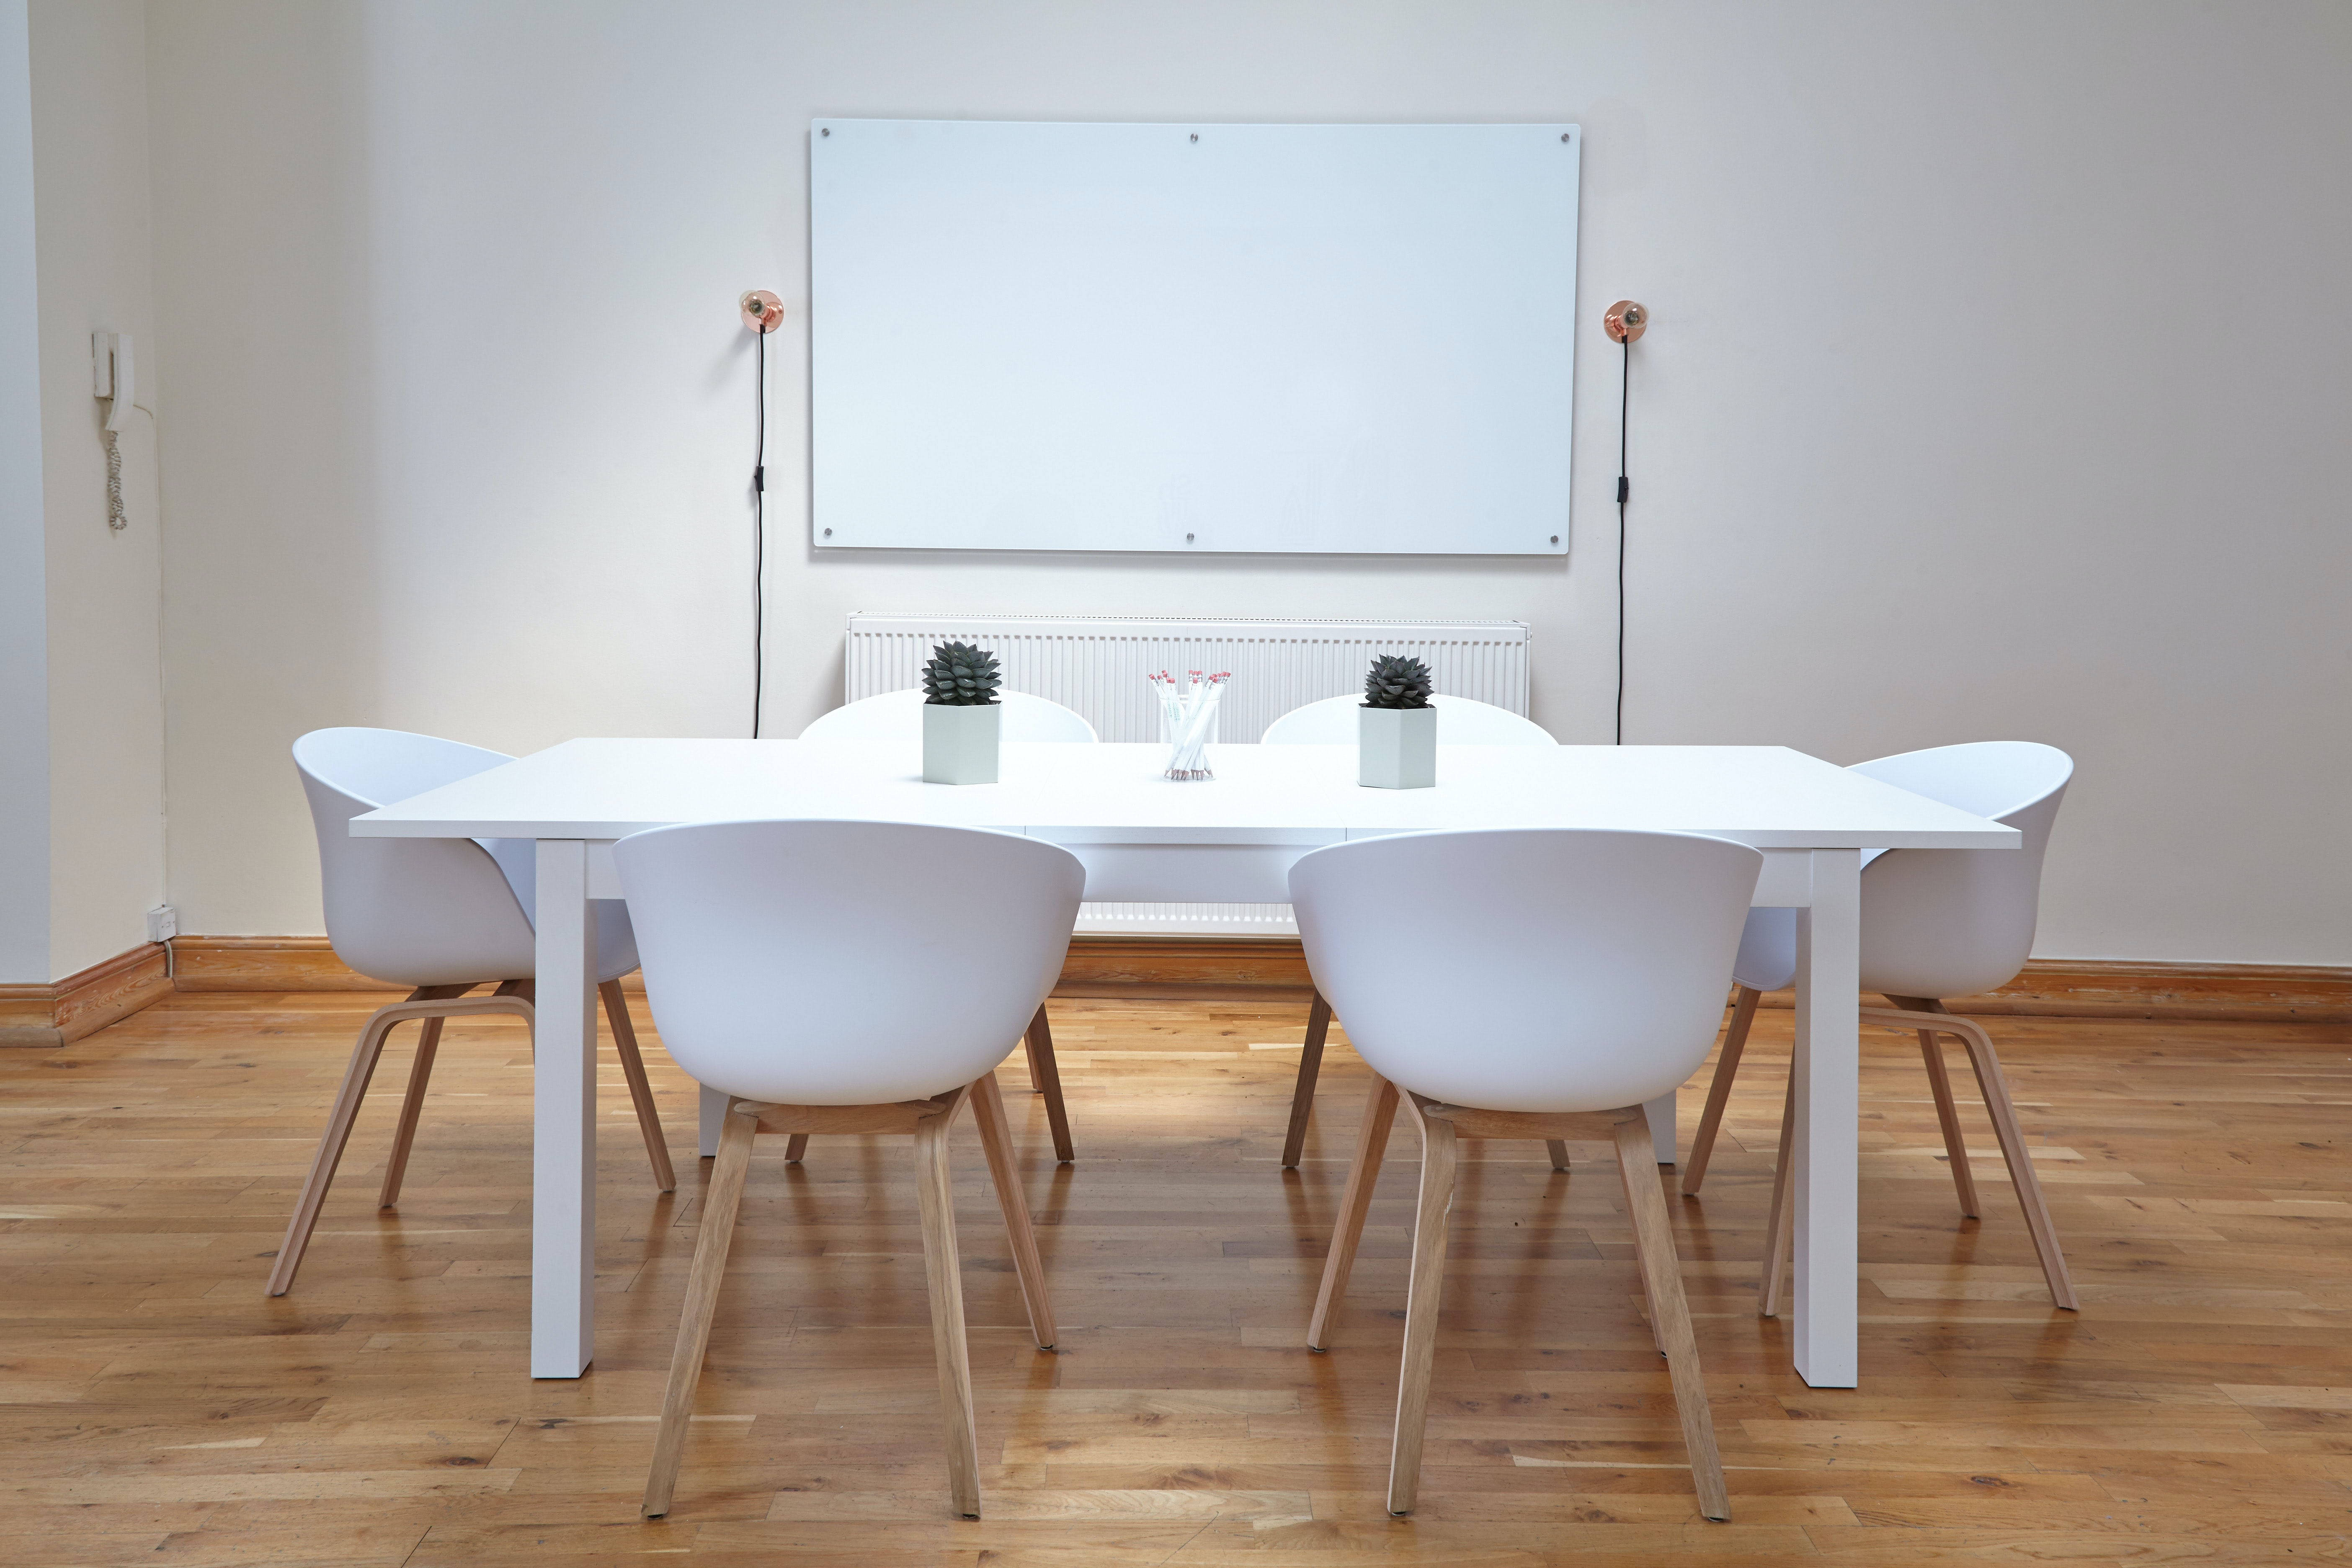 White chairs near a white table in a small conference room with a whiteboard